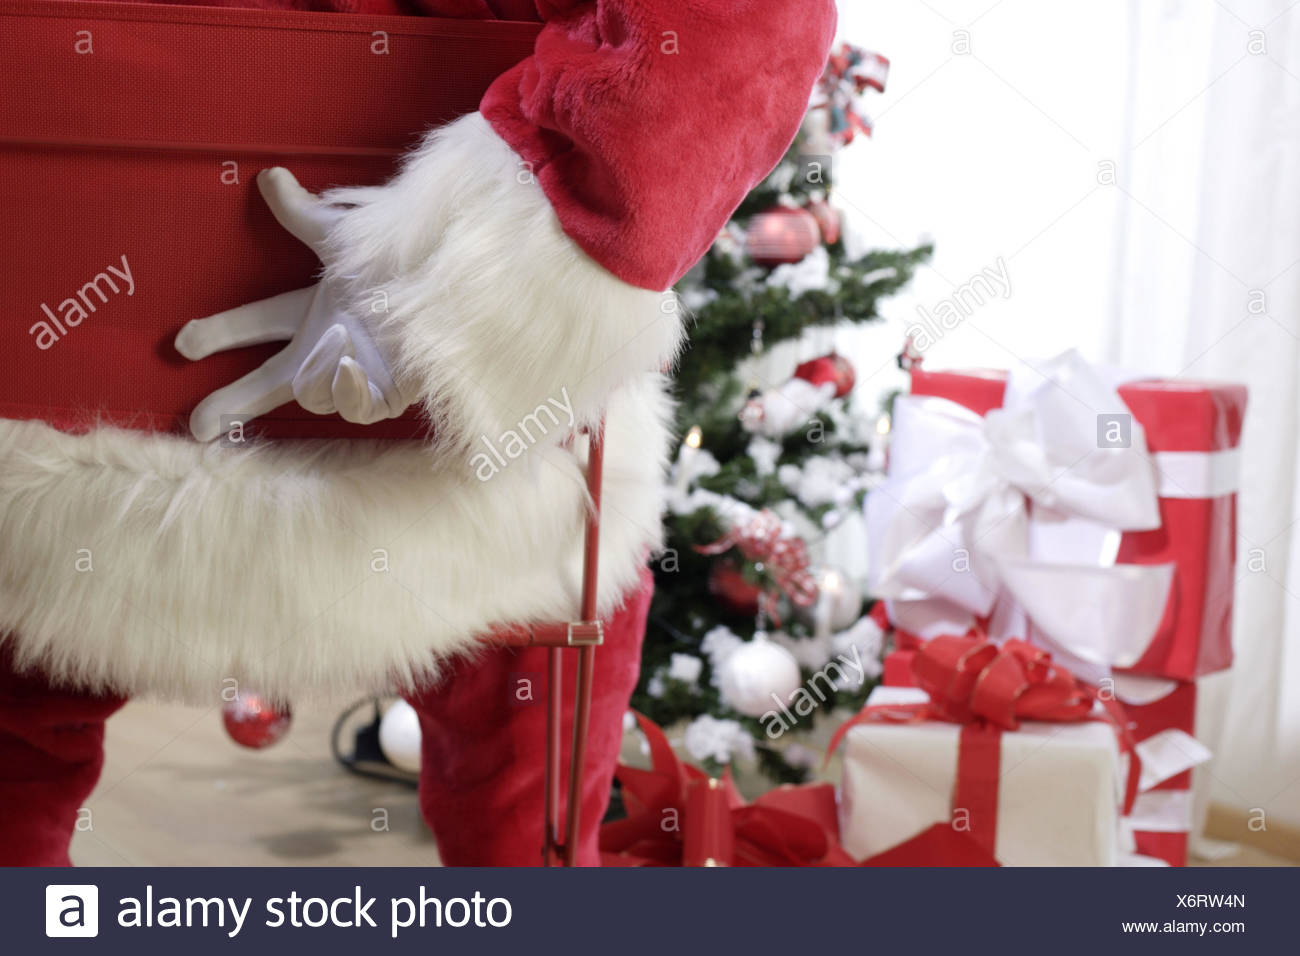 Geroma Weihnachtsbaum.Body Counts Stock Photos Body Counts Stock Images Alamy